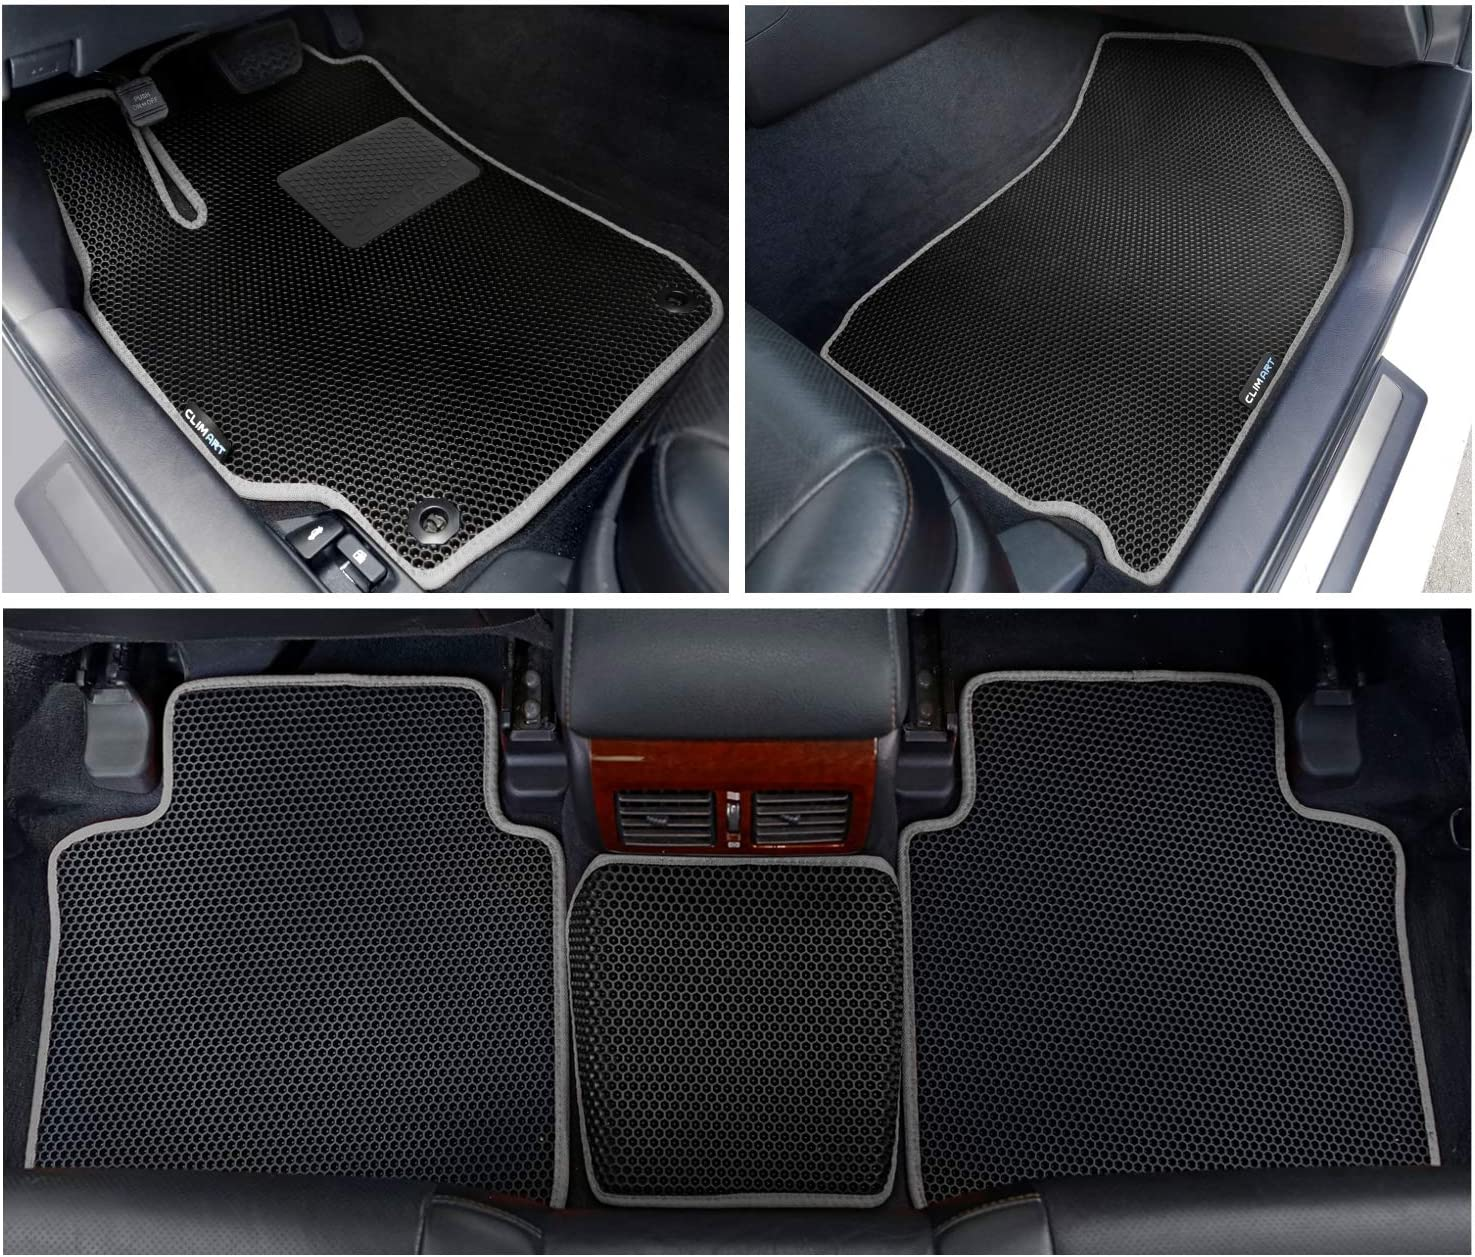 Allweather CLIM ART Honeycomb Custom Fit Floor Mats for Toyota Camry 2015-2017 1st /& 2nd Row Car Accessories Tapetes para Autos Black//Black FL011311023 Car Floor Liner